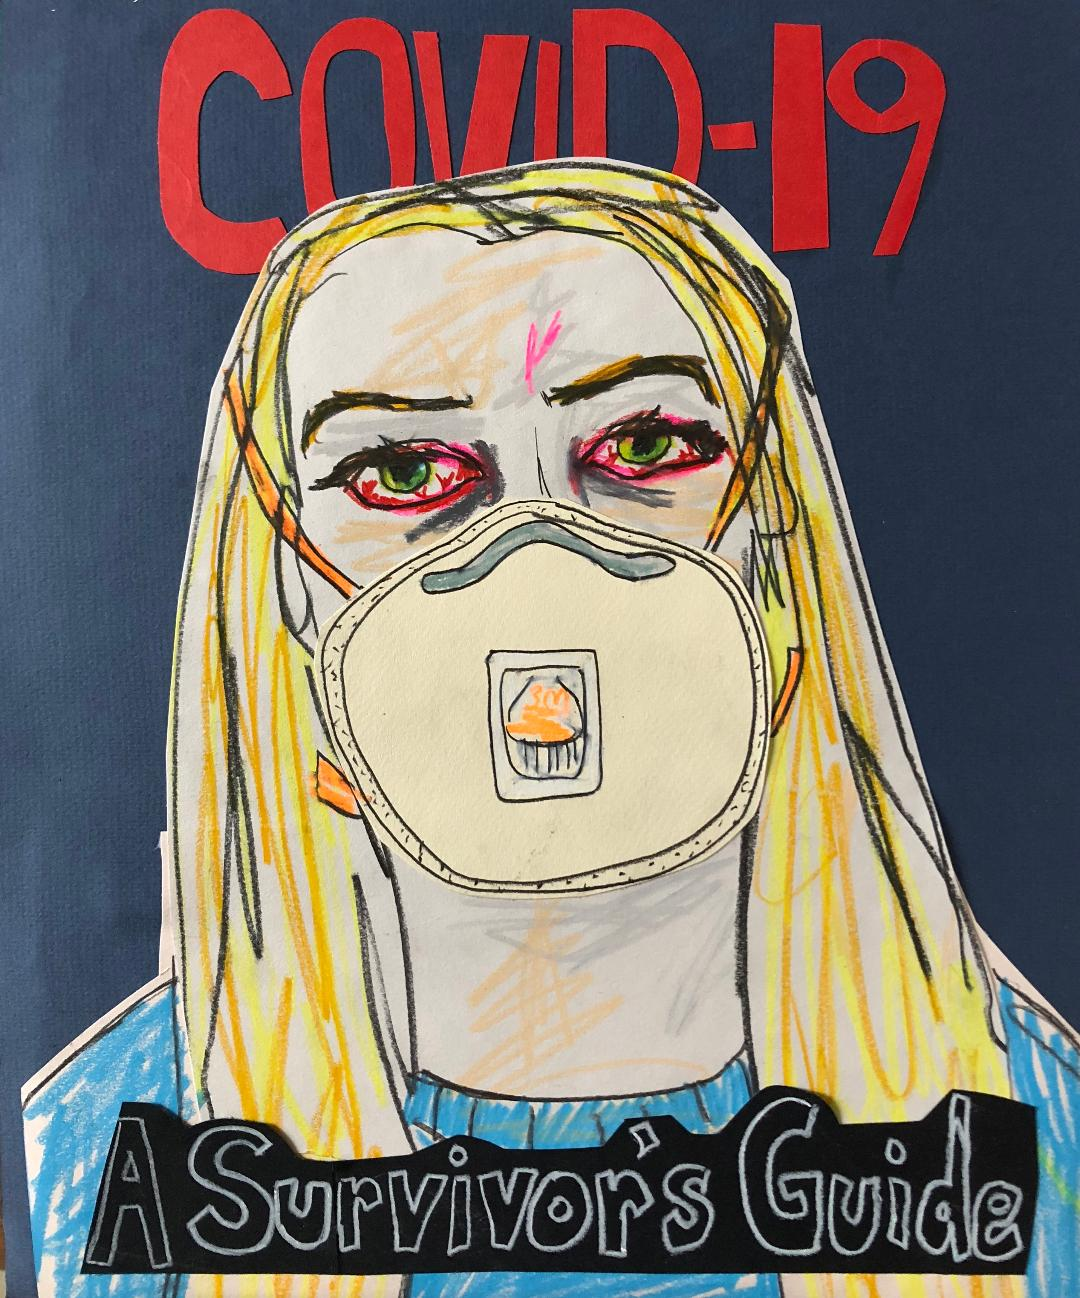 Sunde White writes and illustrates about her experience having COVID-19